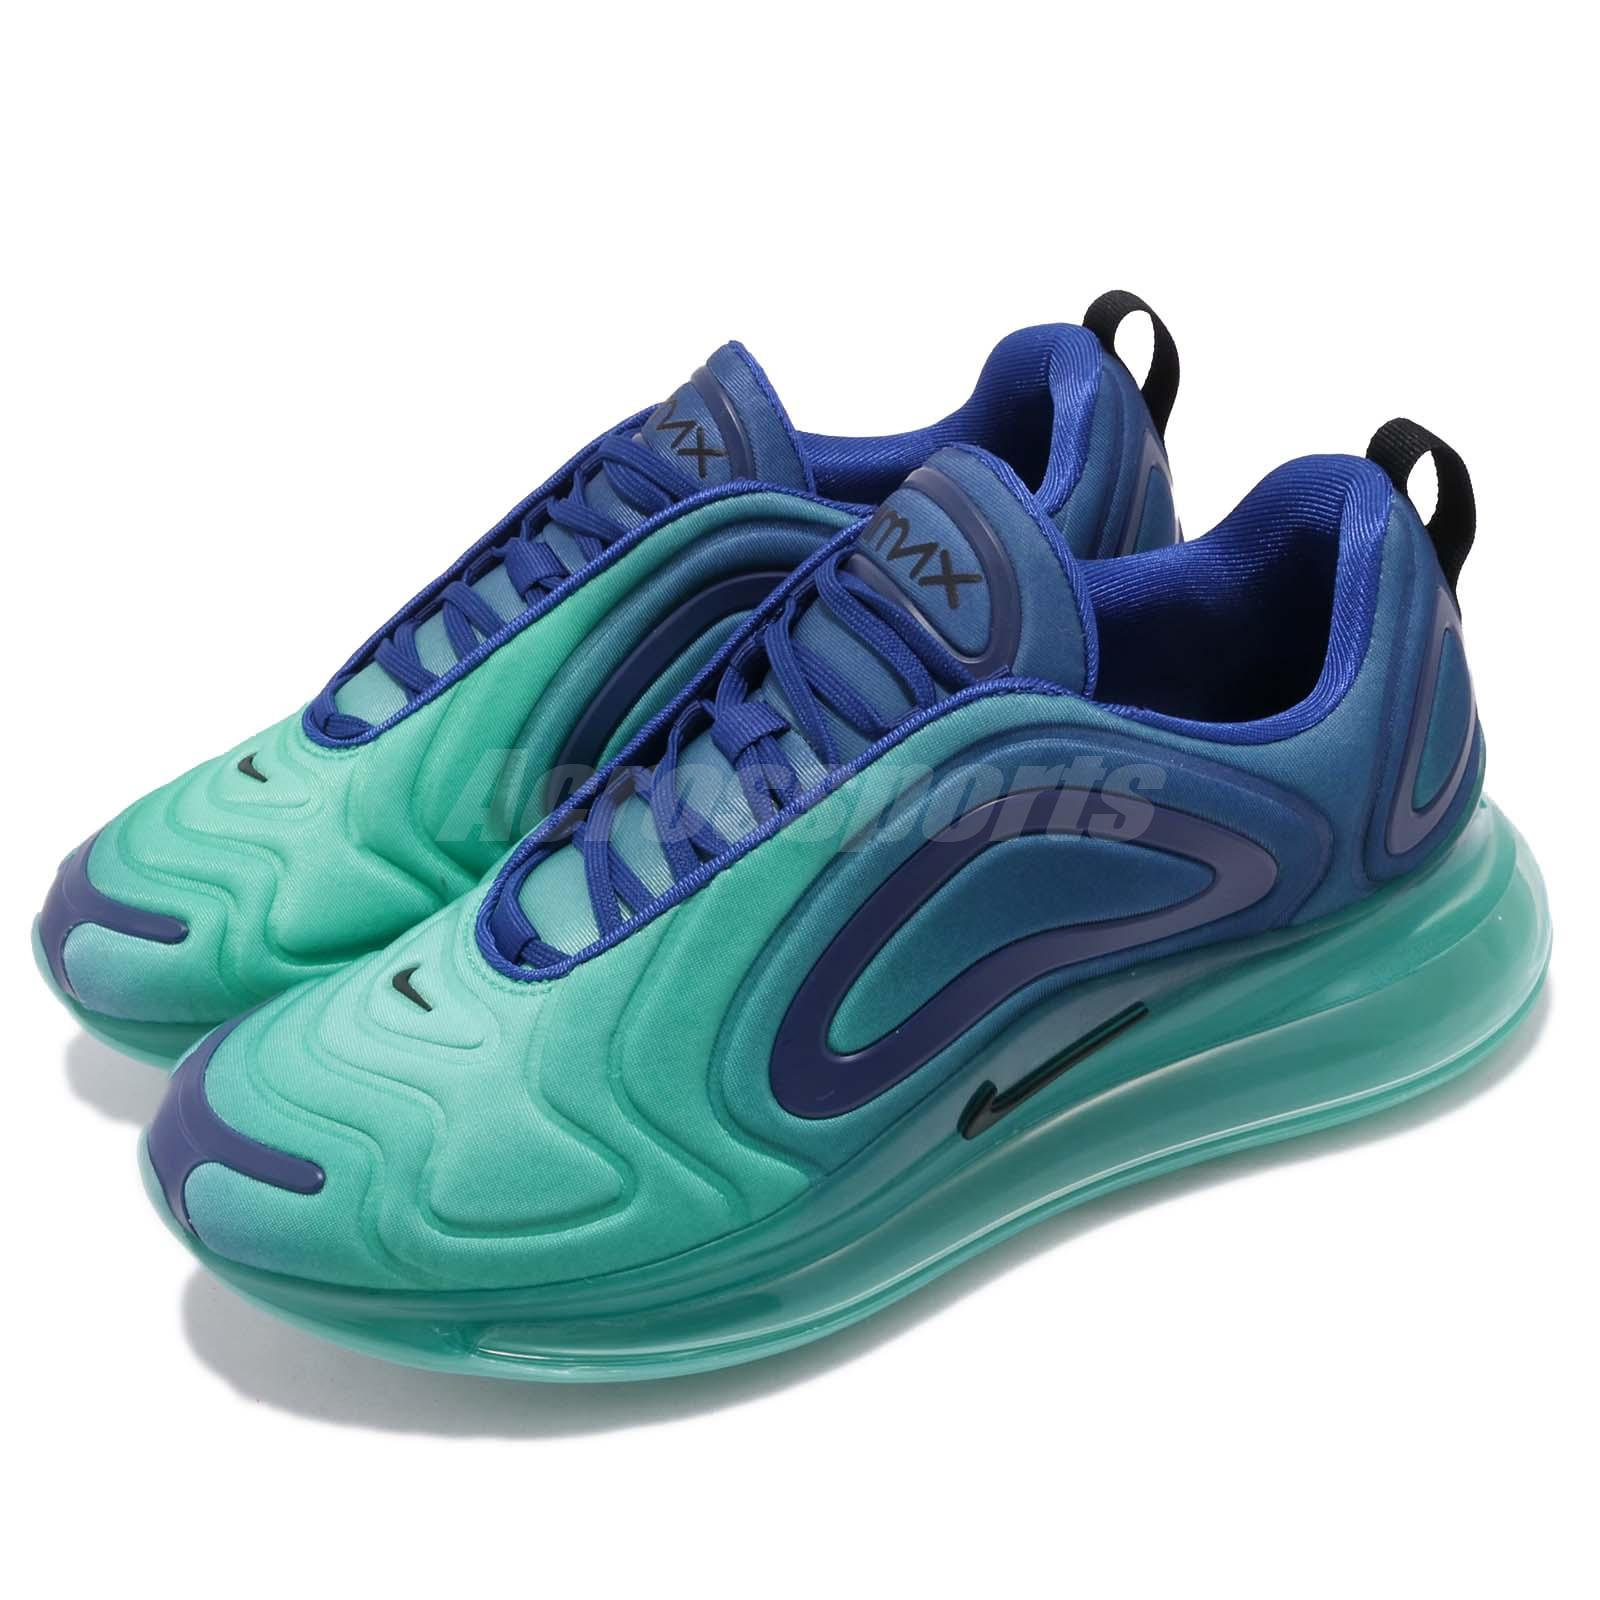 665016bc Details about Nike Air Max 720 Sea Forest Deep Royal Blue Men Running Shoes  Sneaker AO2924-400